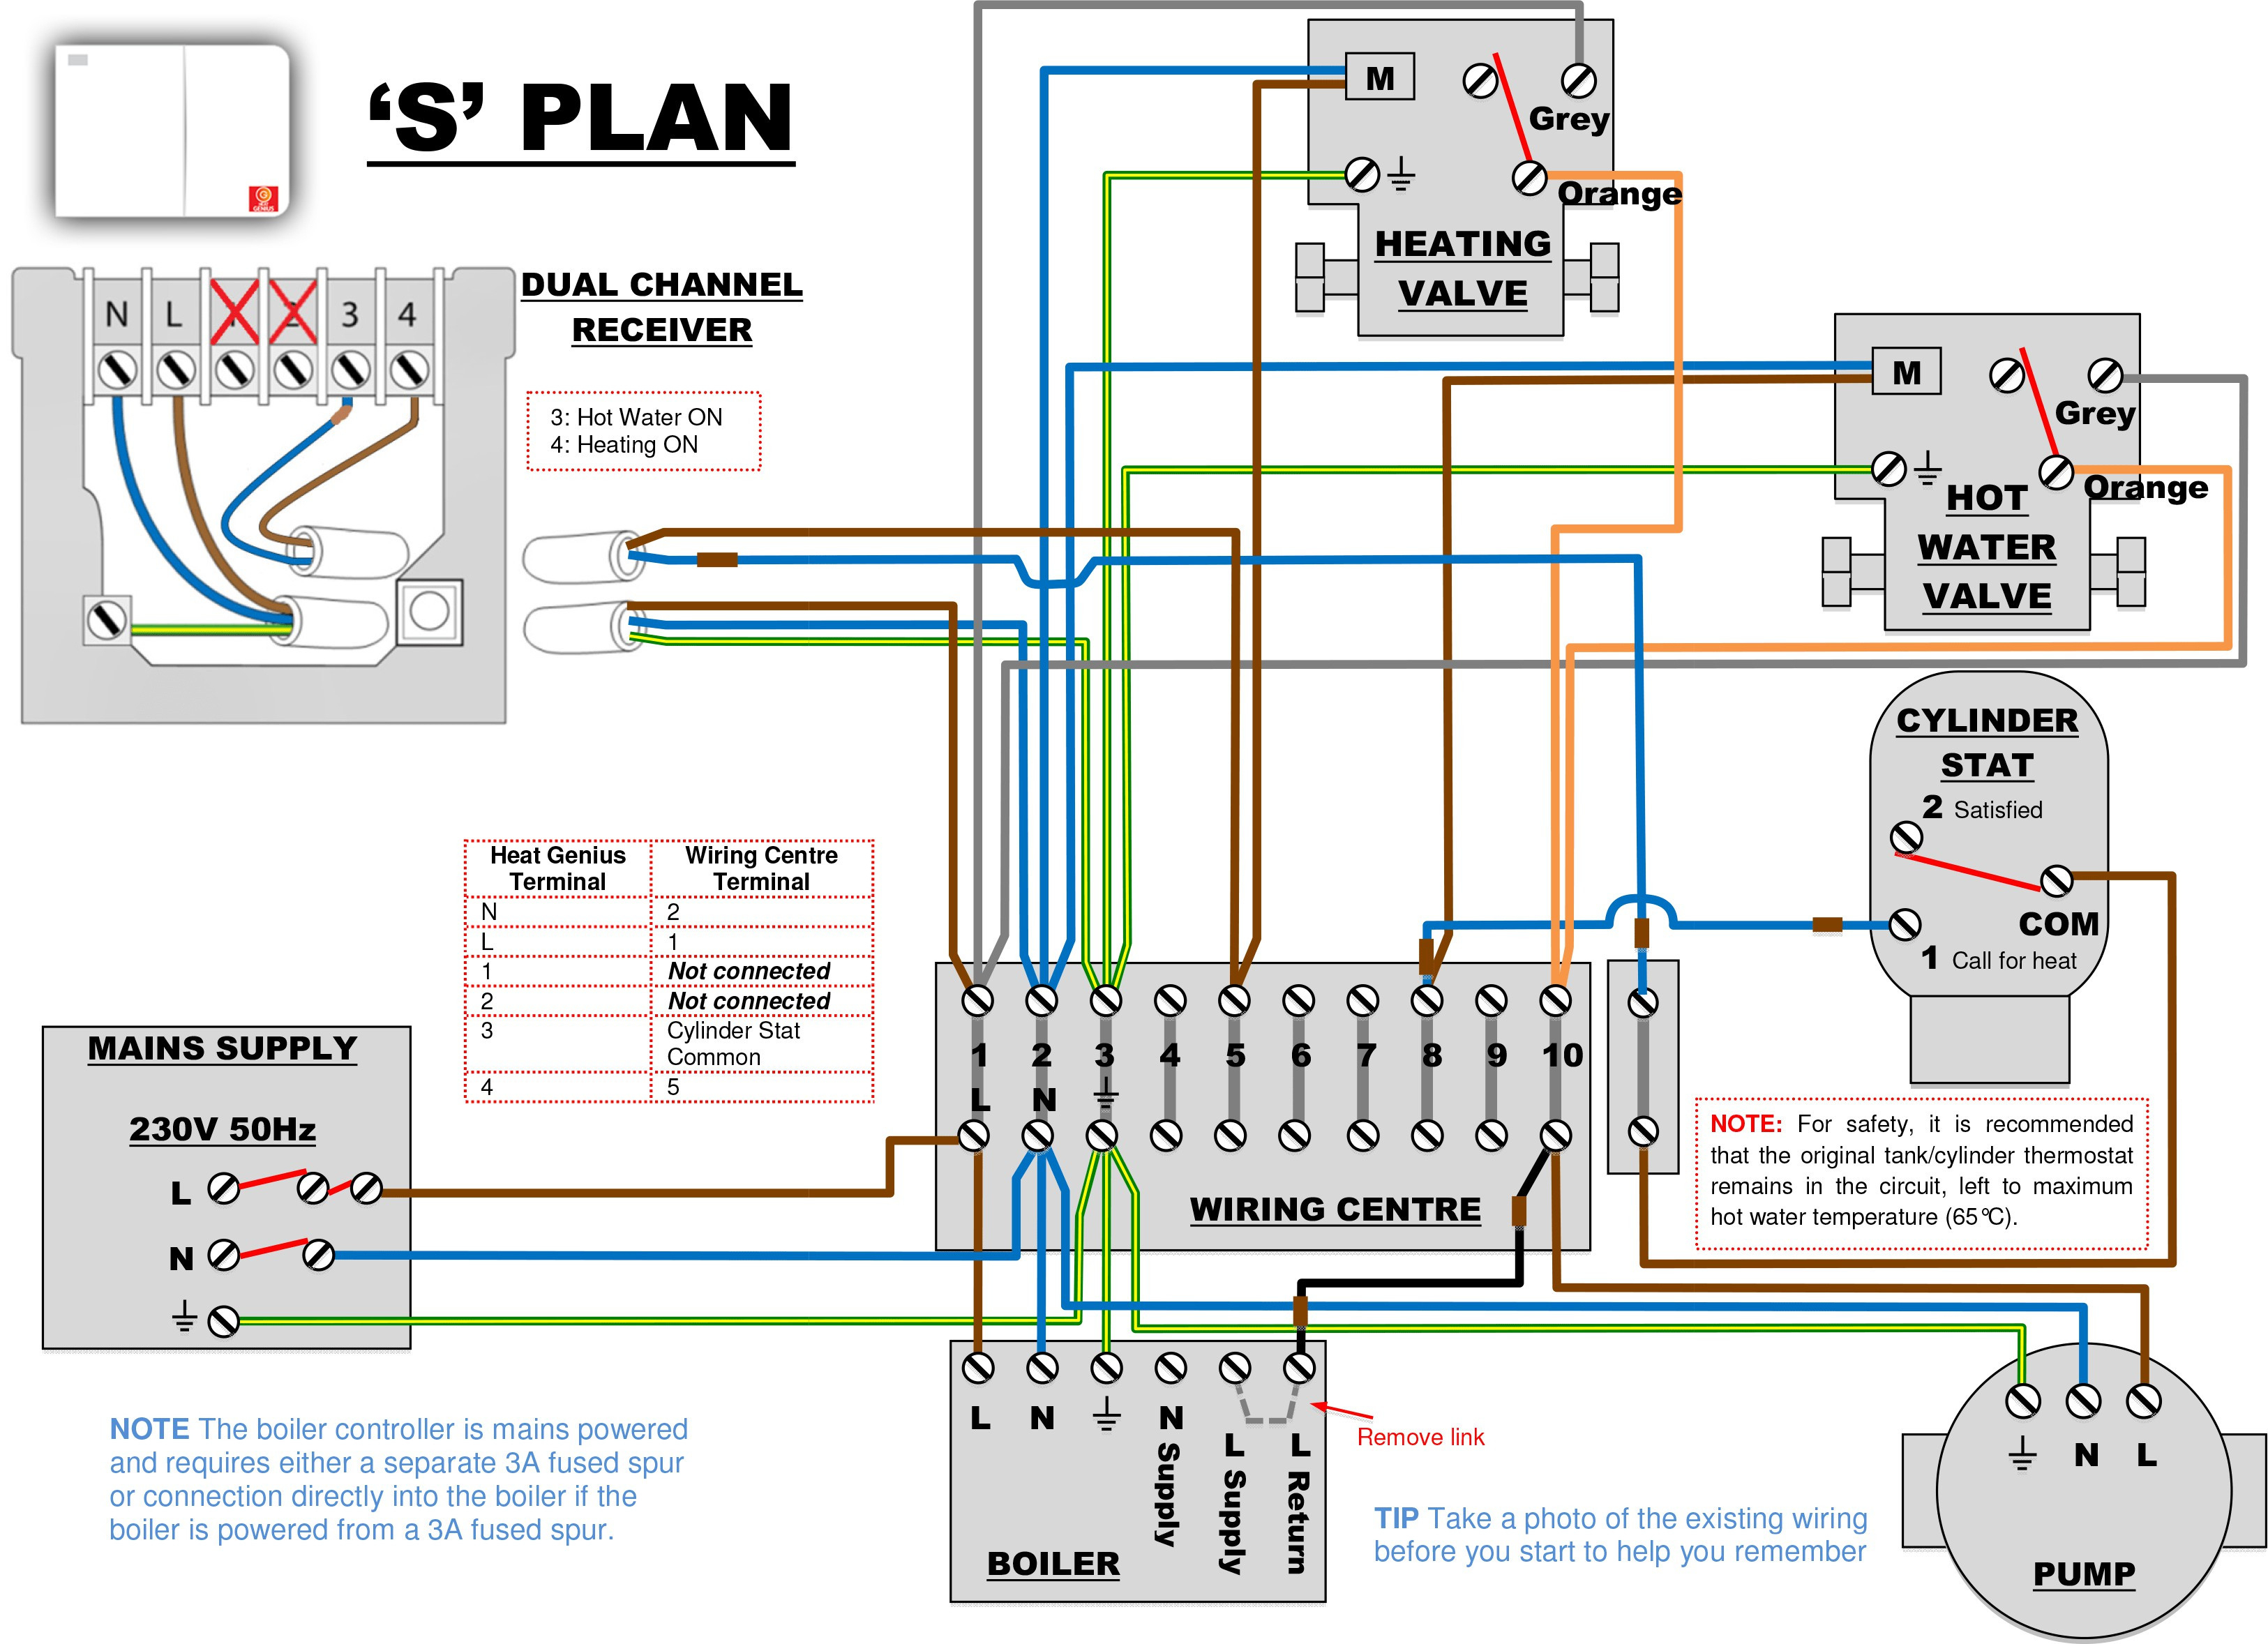 Nest Room Thermostat Wiring Diagram | Wiring Diagram - Nest Water Wiring Diagram